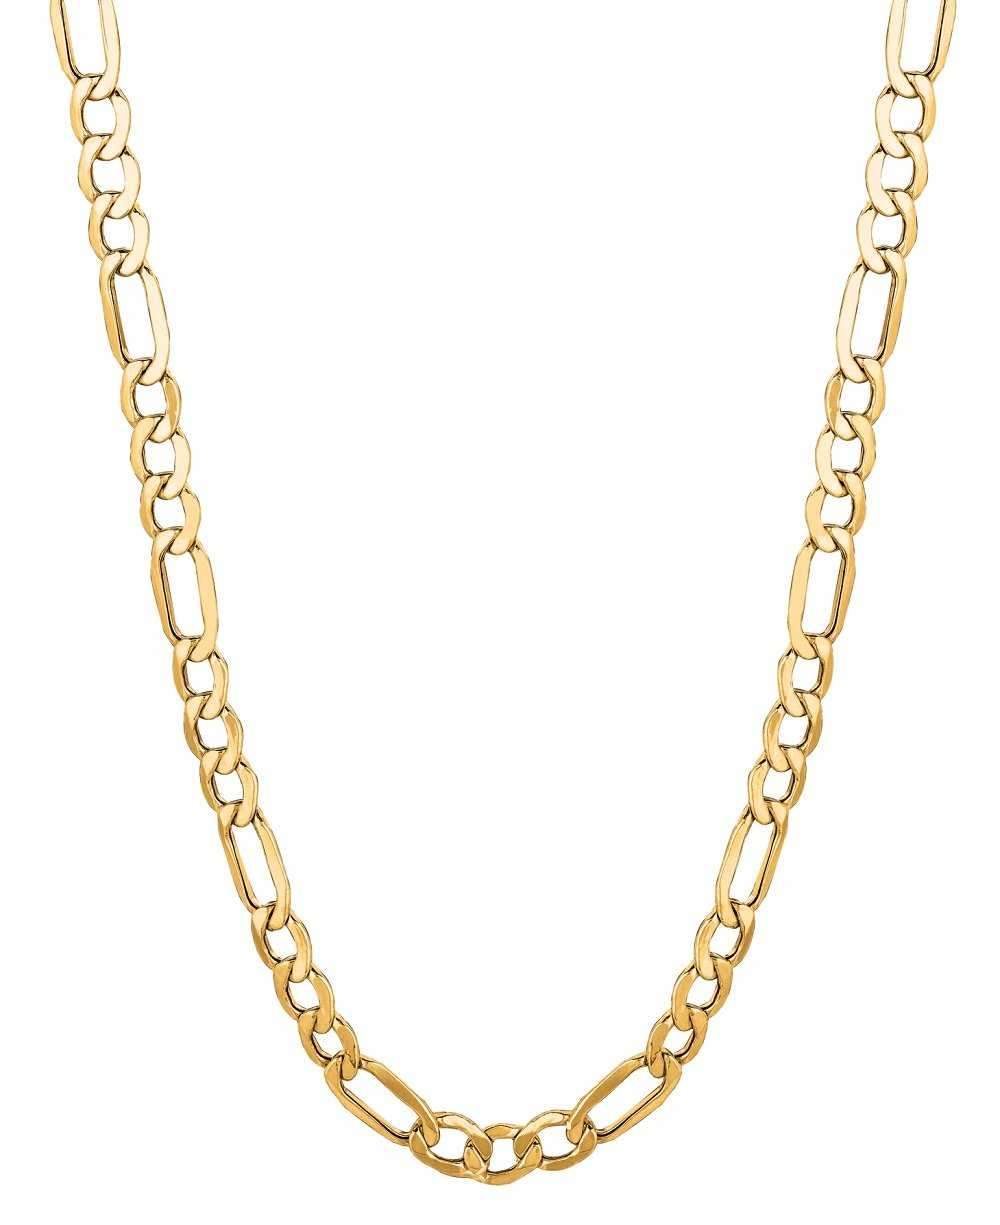 14Kt Solid Yellow Gold Classic Figaro Lite Curb Link Chain/Necklace 6.5 Mm (Lfig140